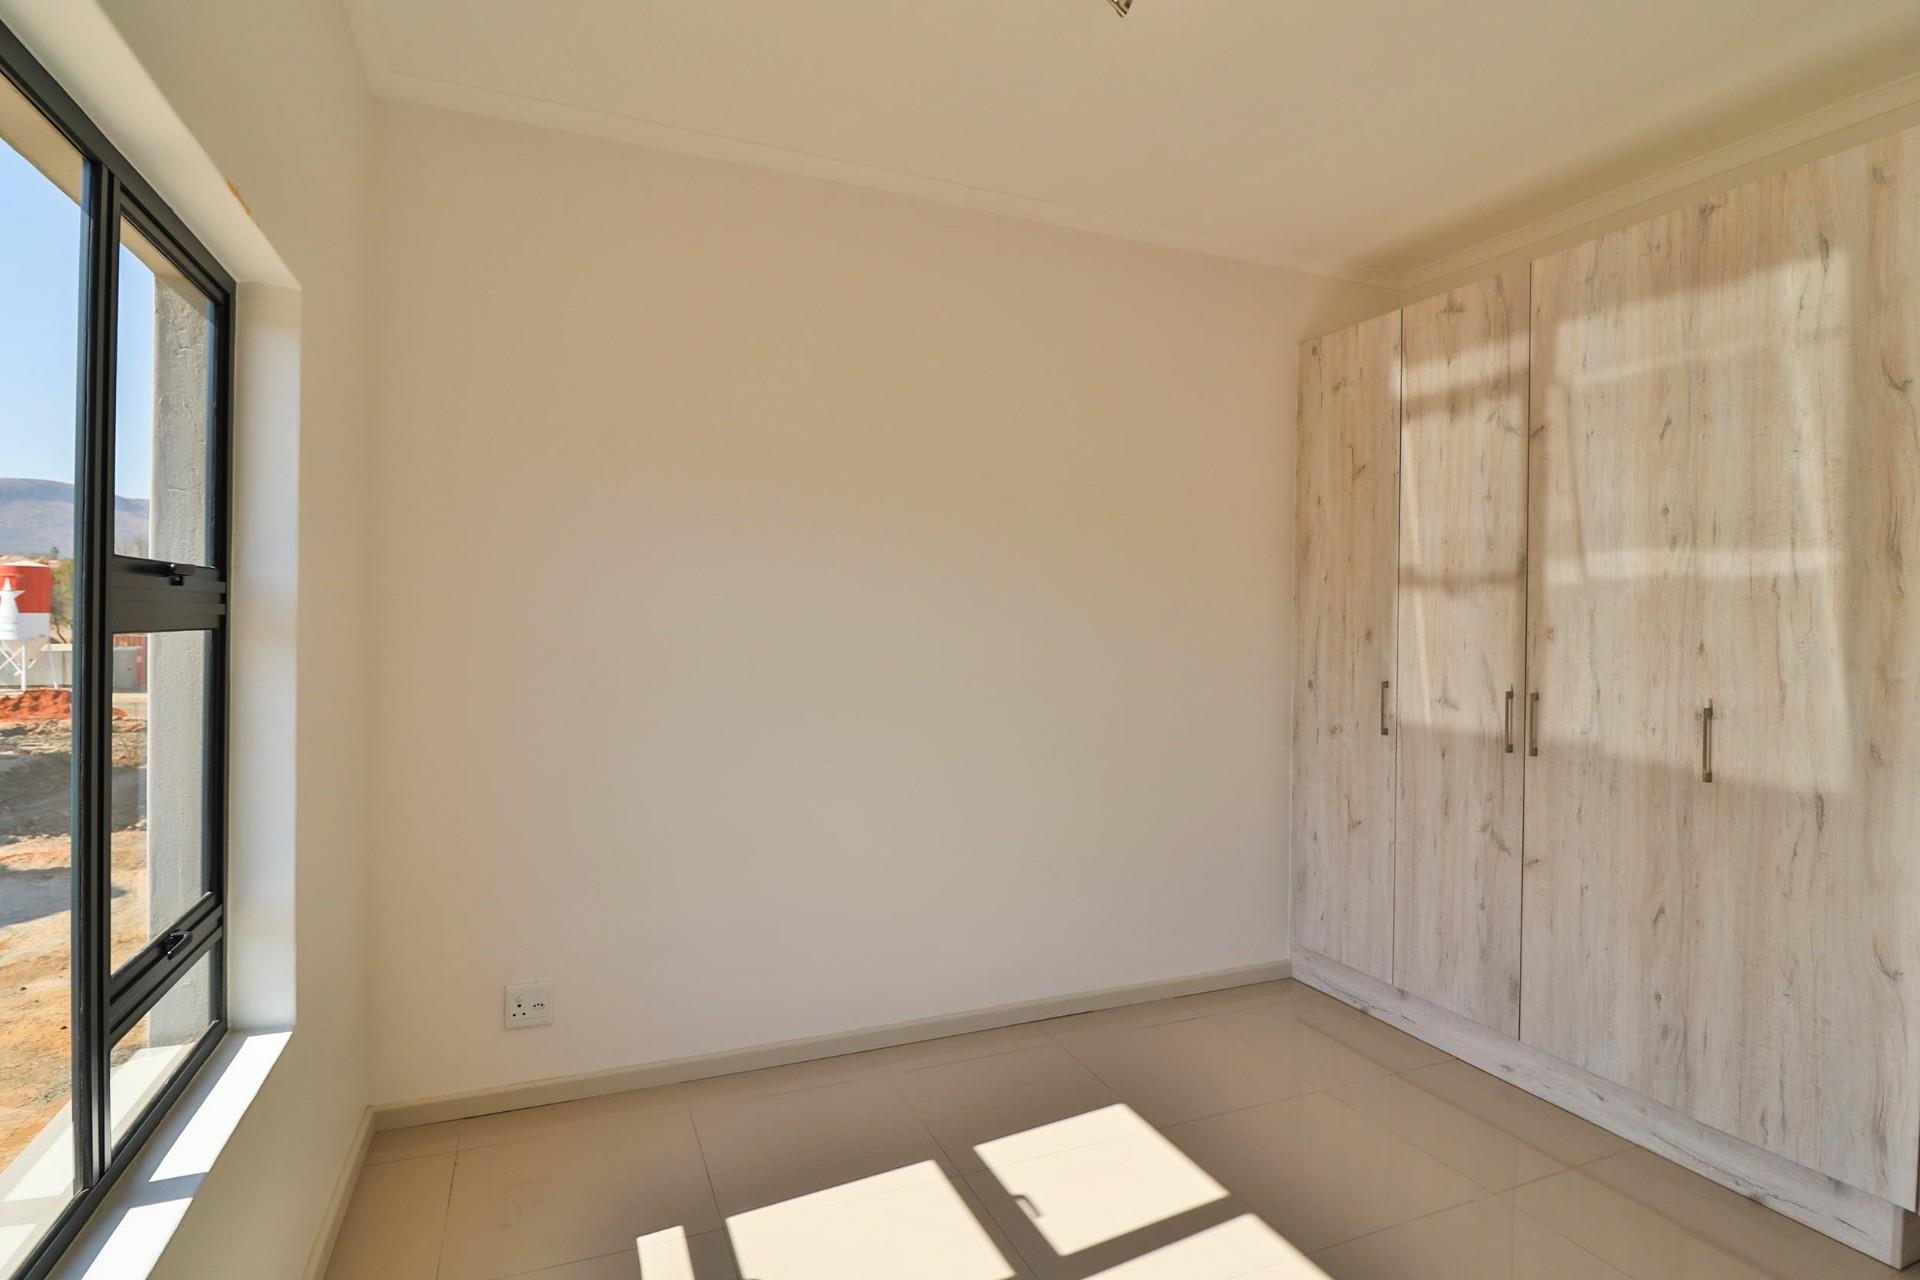 2 Bedroom House For Sale in Melodie